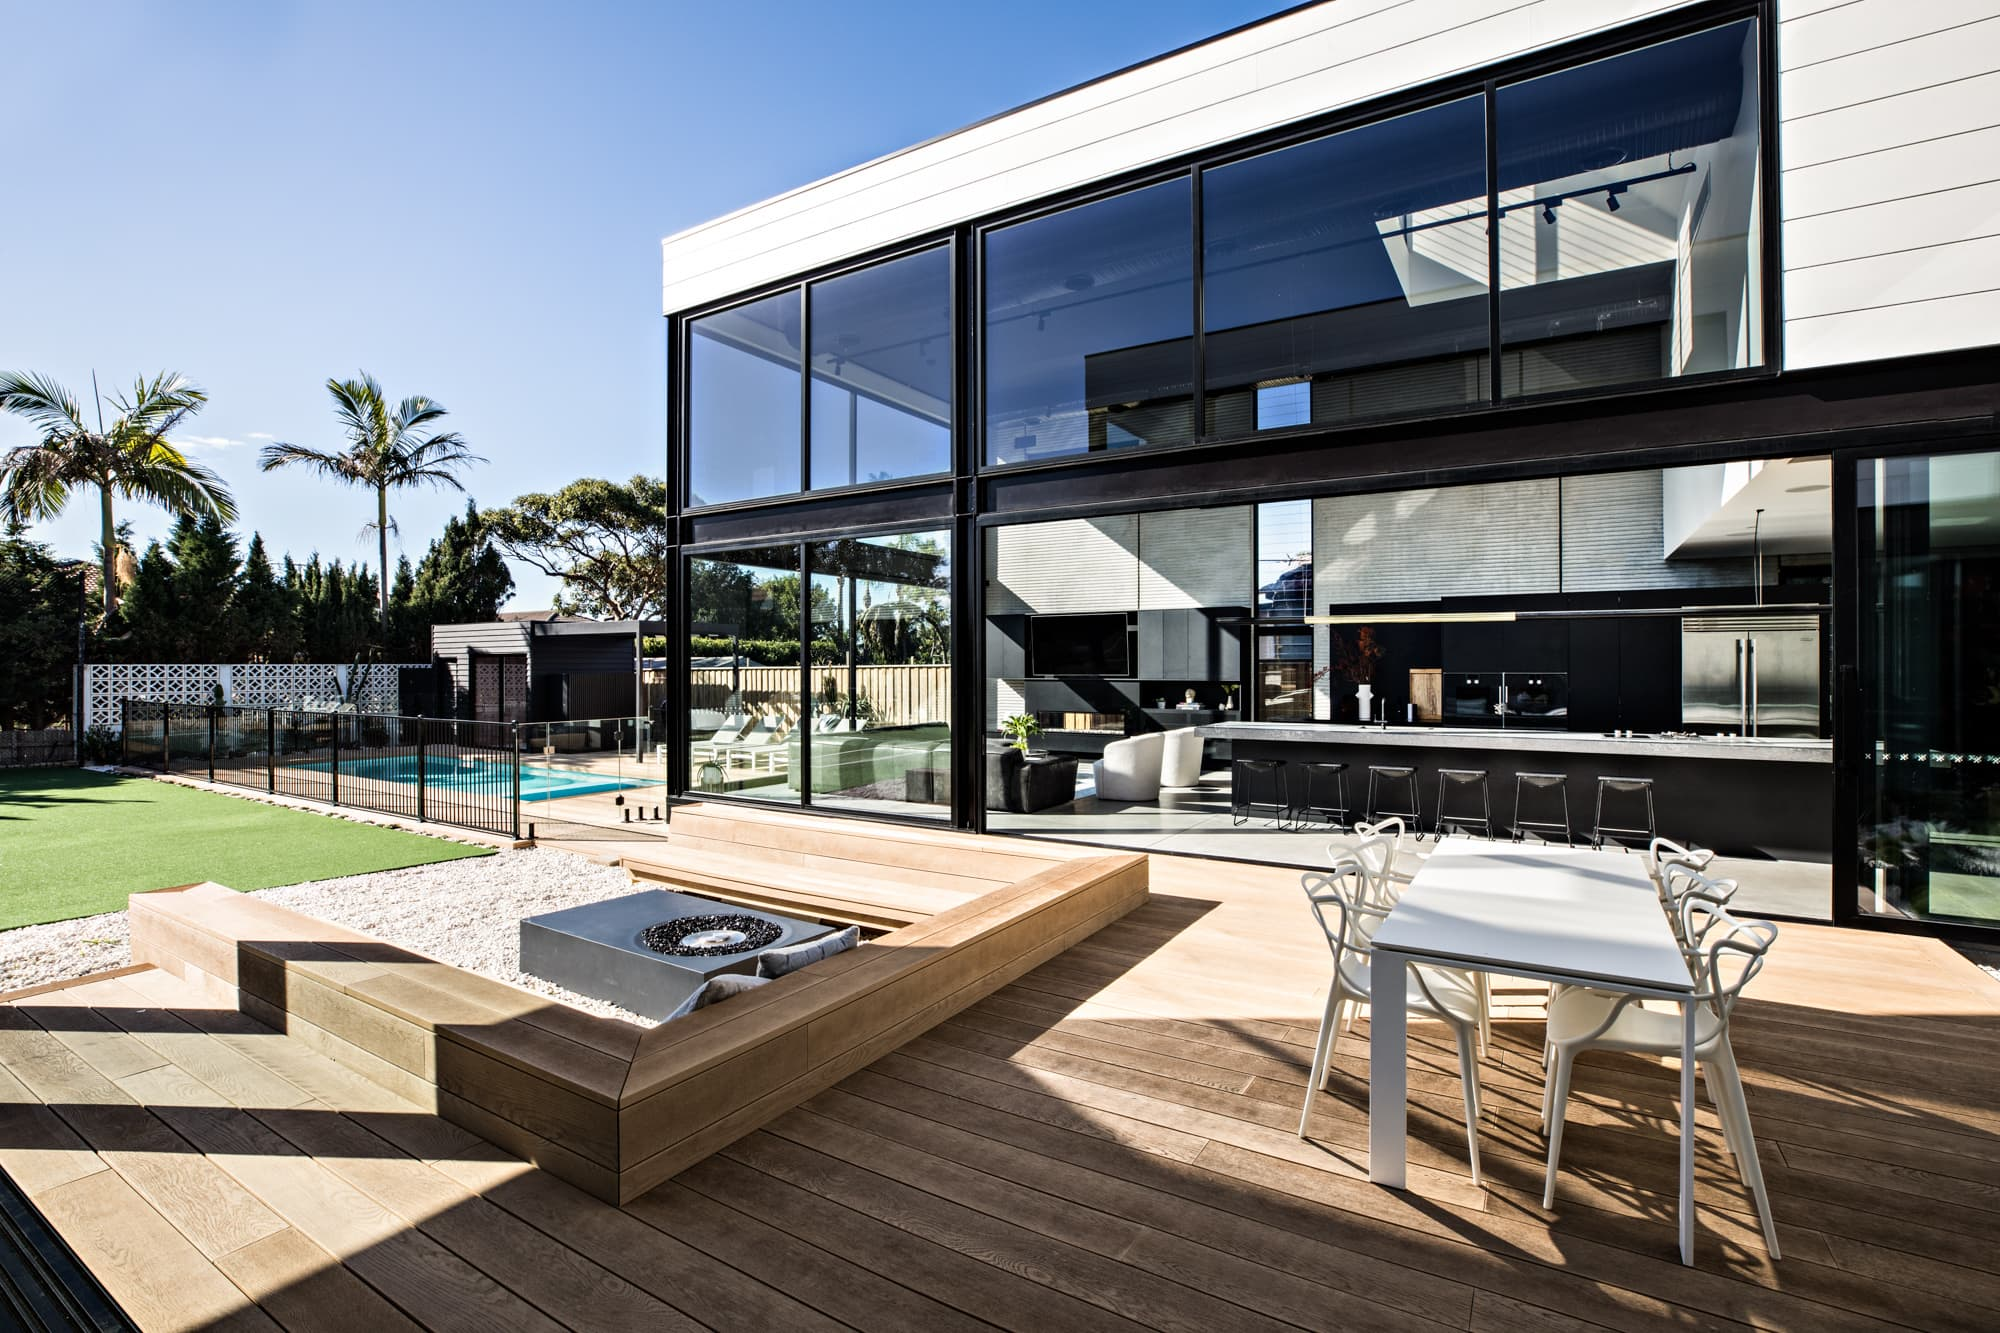 Beautiful house with outside decking